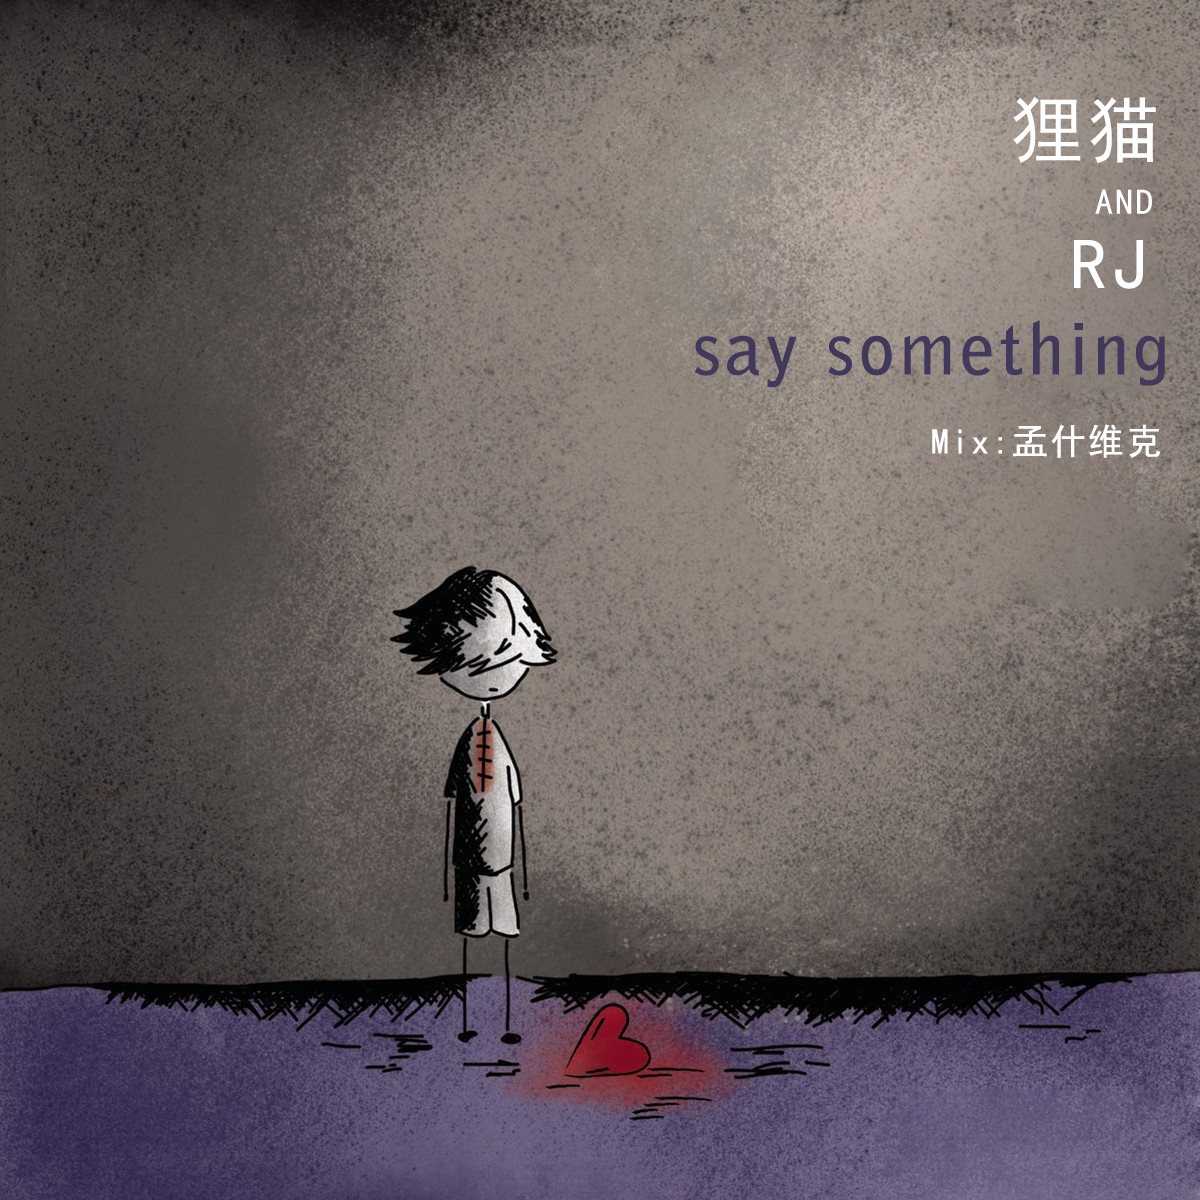 something什么意思_say something (ft. 狸猫)